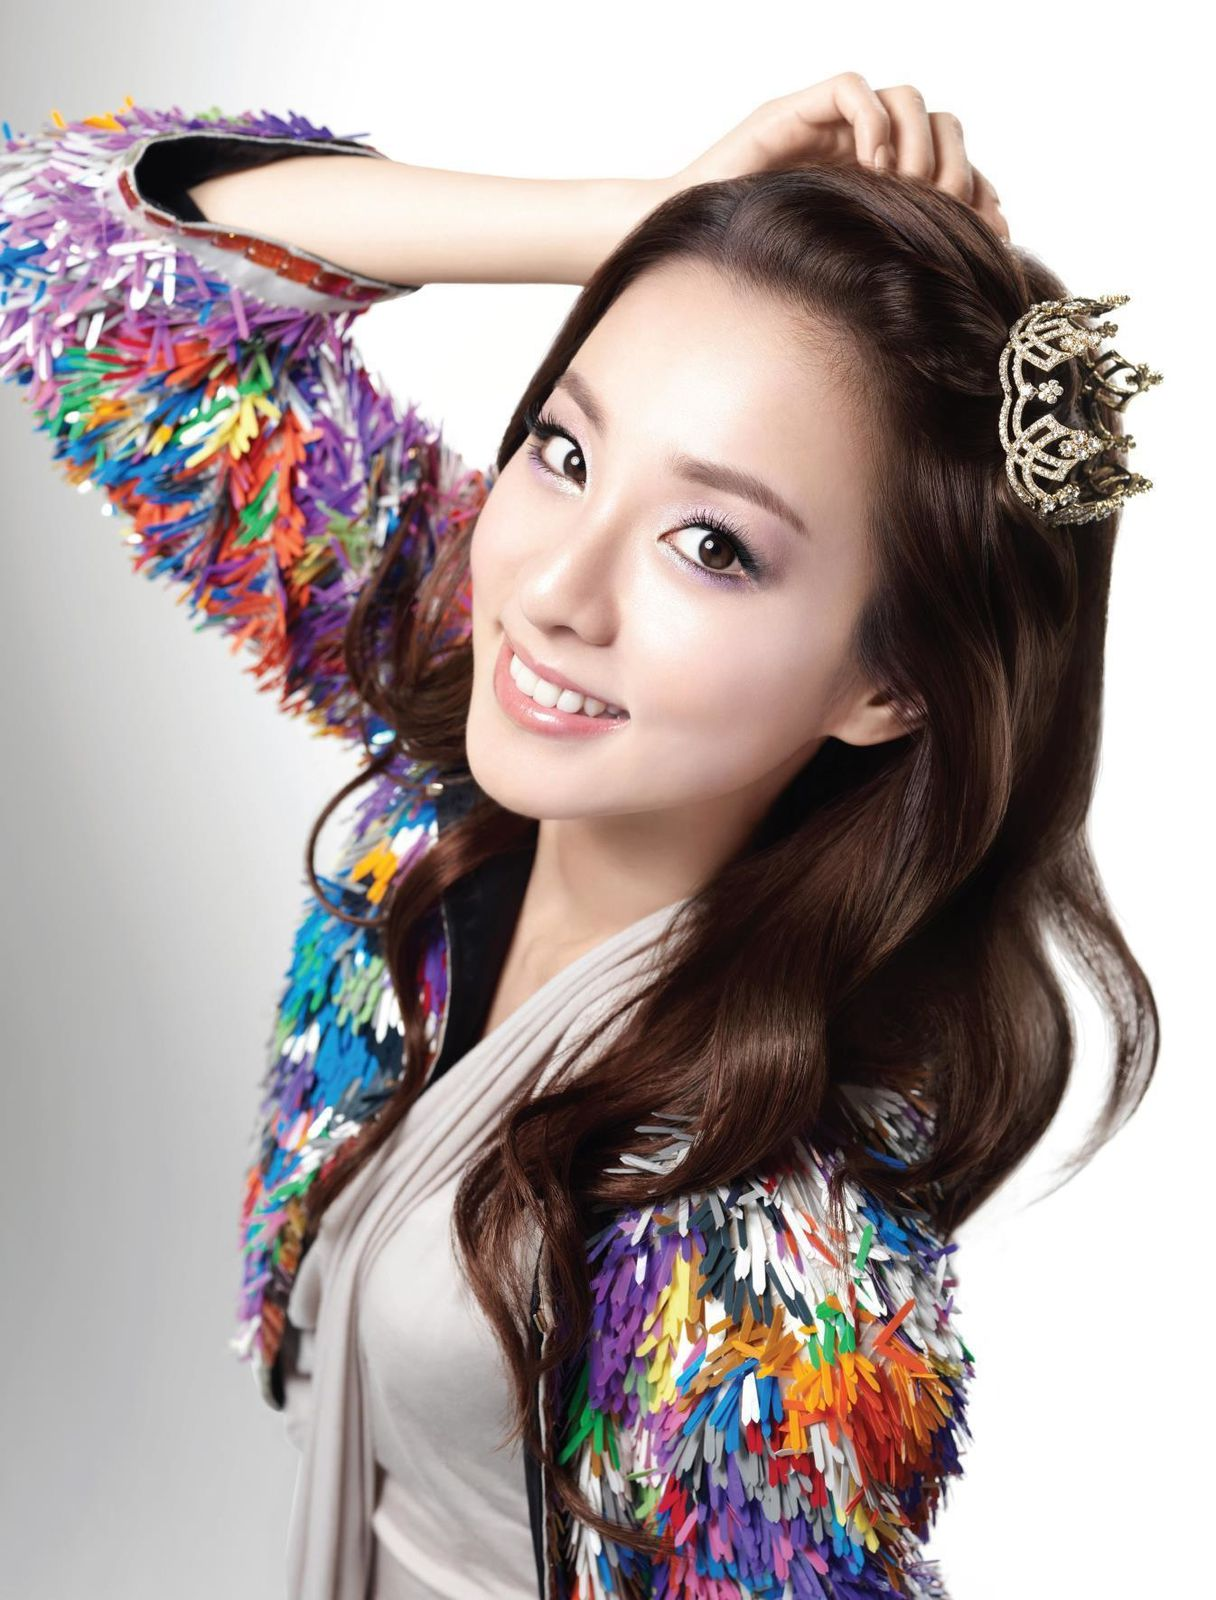 Dara birthday ^^